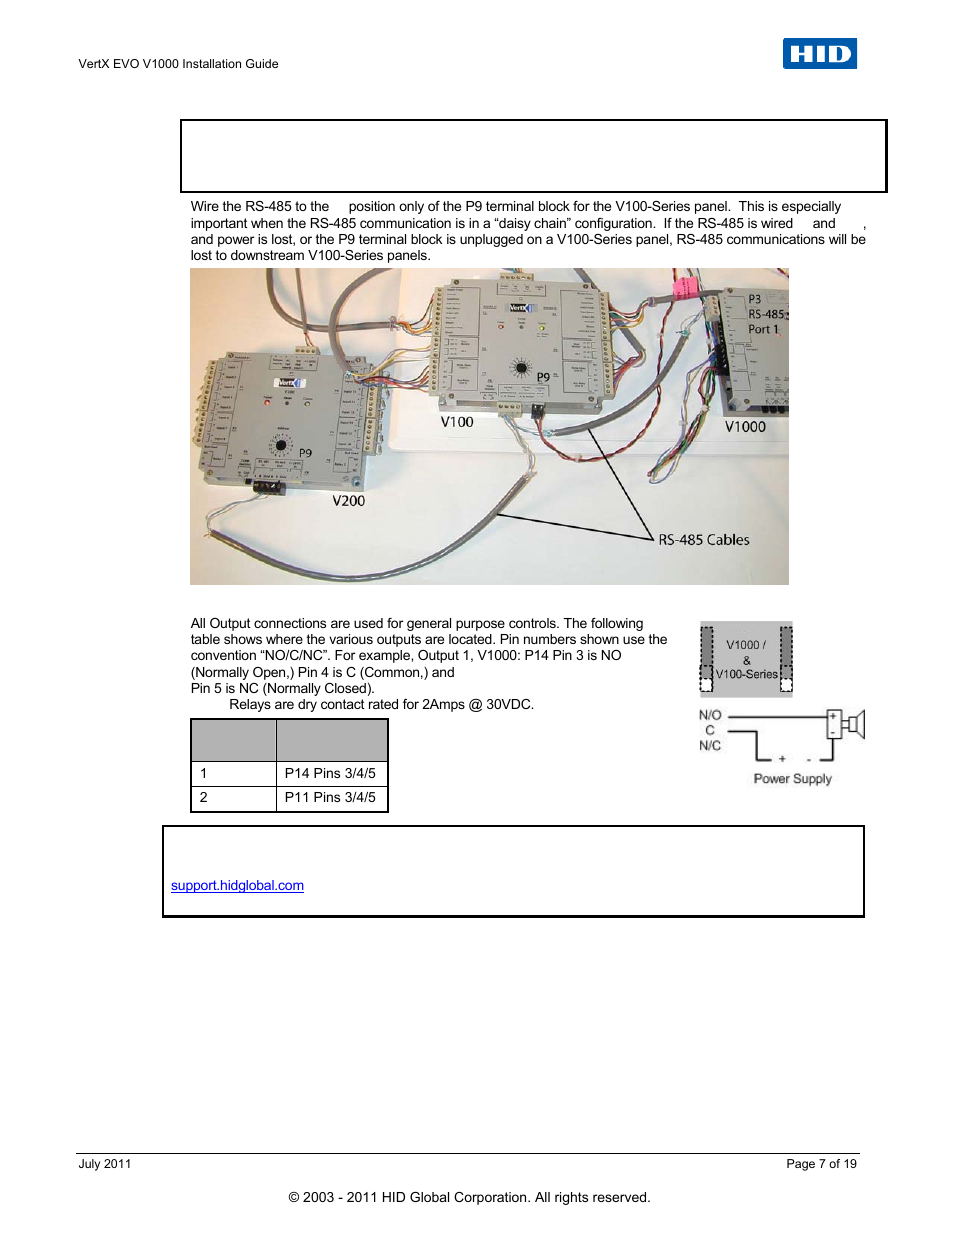 Hid V1000 Wiring Diagram Free Download Aperio Vertx Evo Installation Guide User Manual Page 7 19 Headlight Circuit At